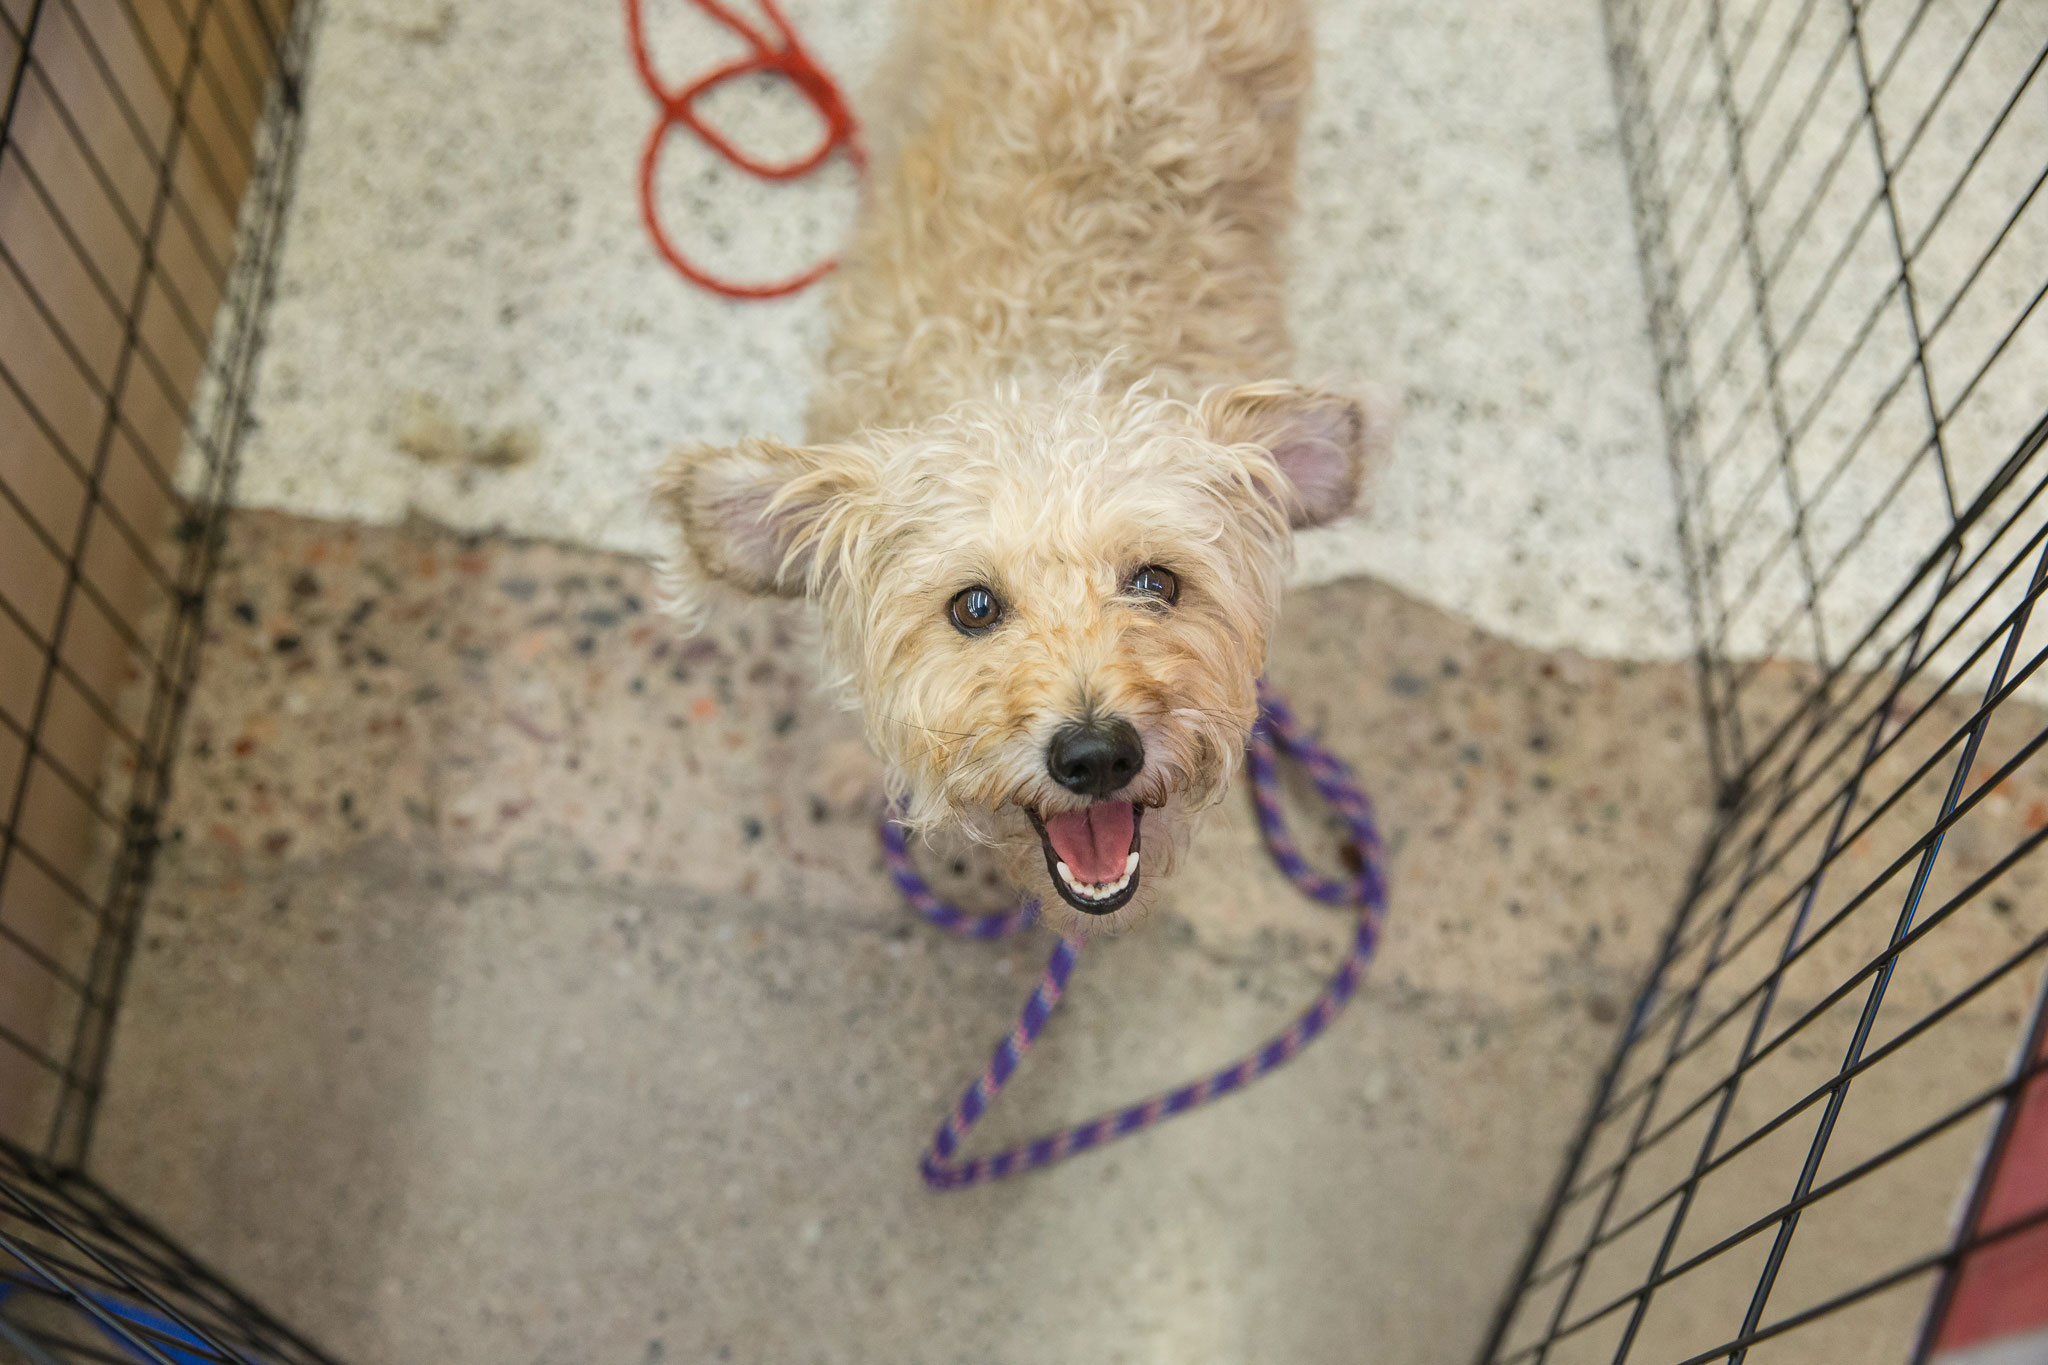 Bissell Pet Foundation hosts Empty the Shelters